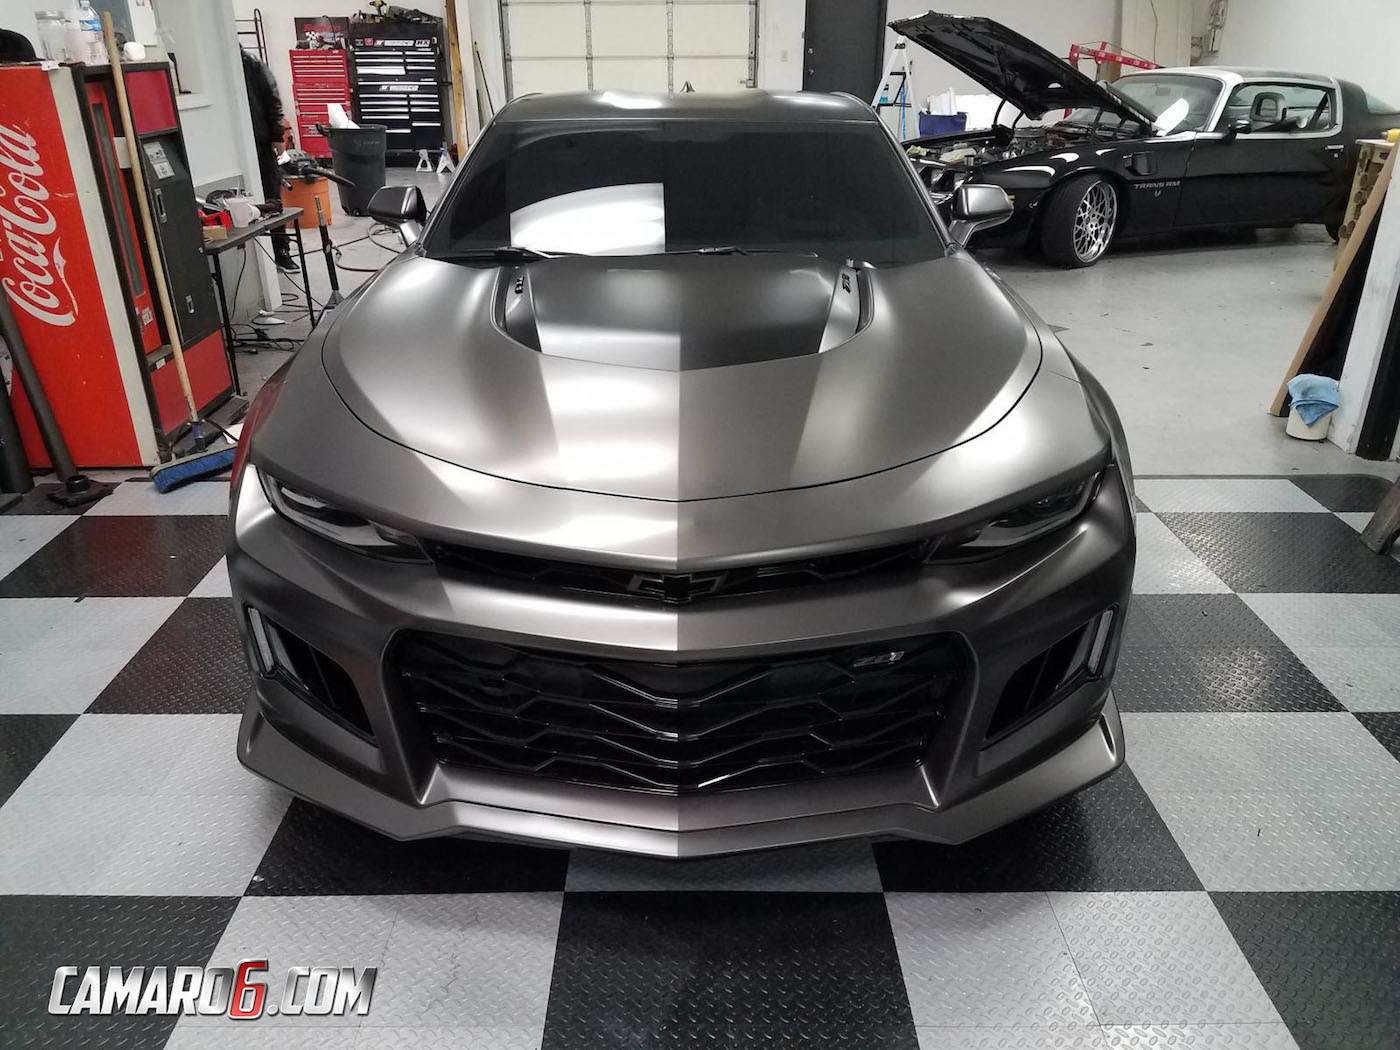 Hellcat 2018 Chevy Camaro >> 2017 Camaro ZL1 Gets Satin Nero Wrap, Extreme Window Tint for Murdered Out Look - autoevolution